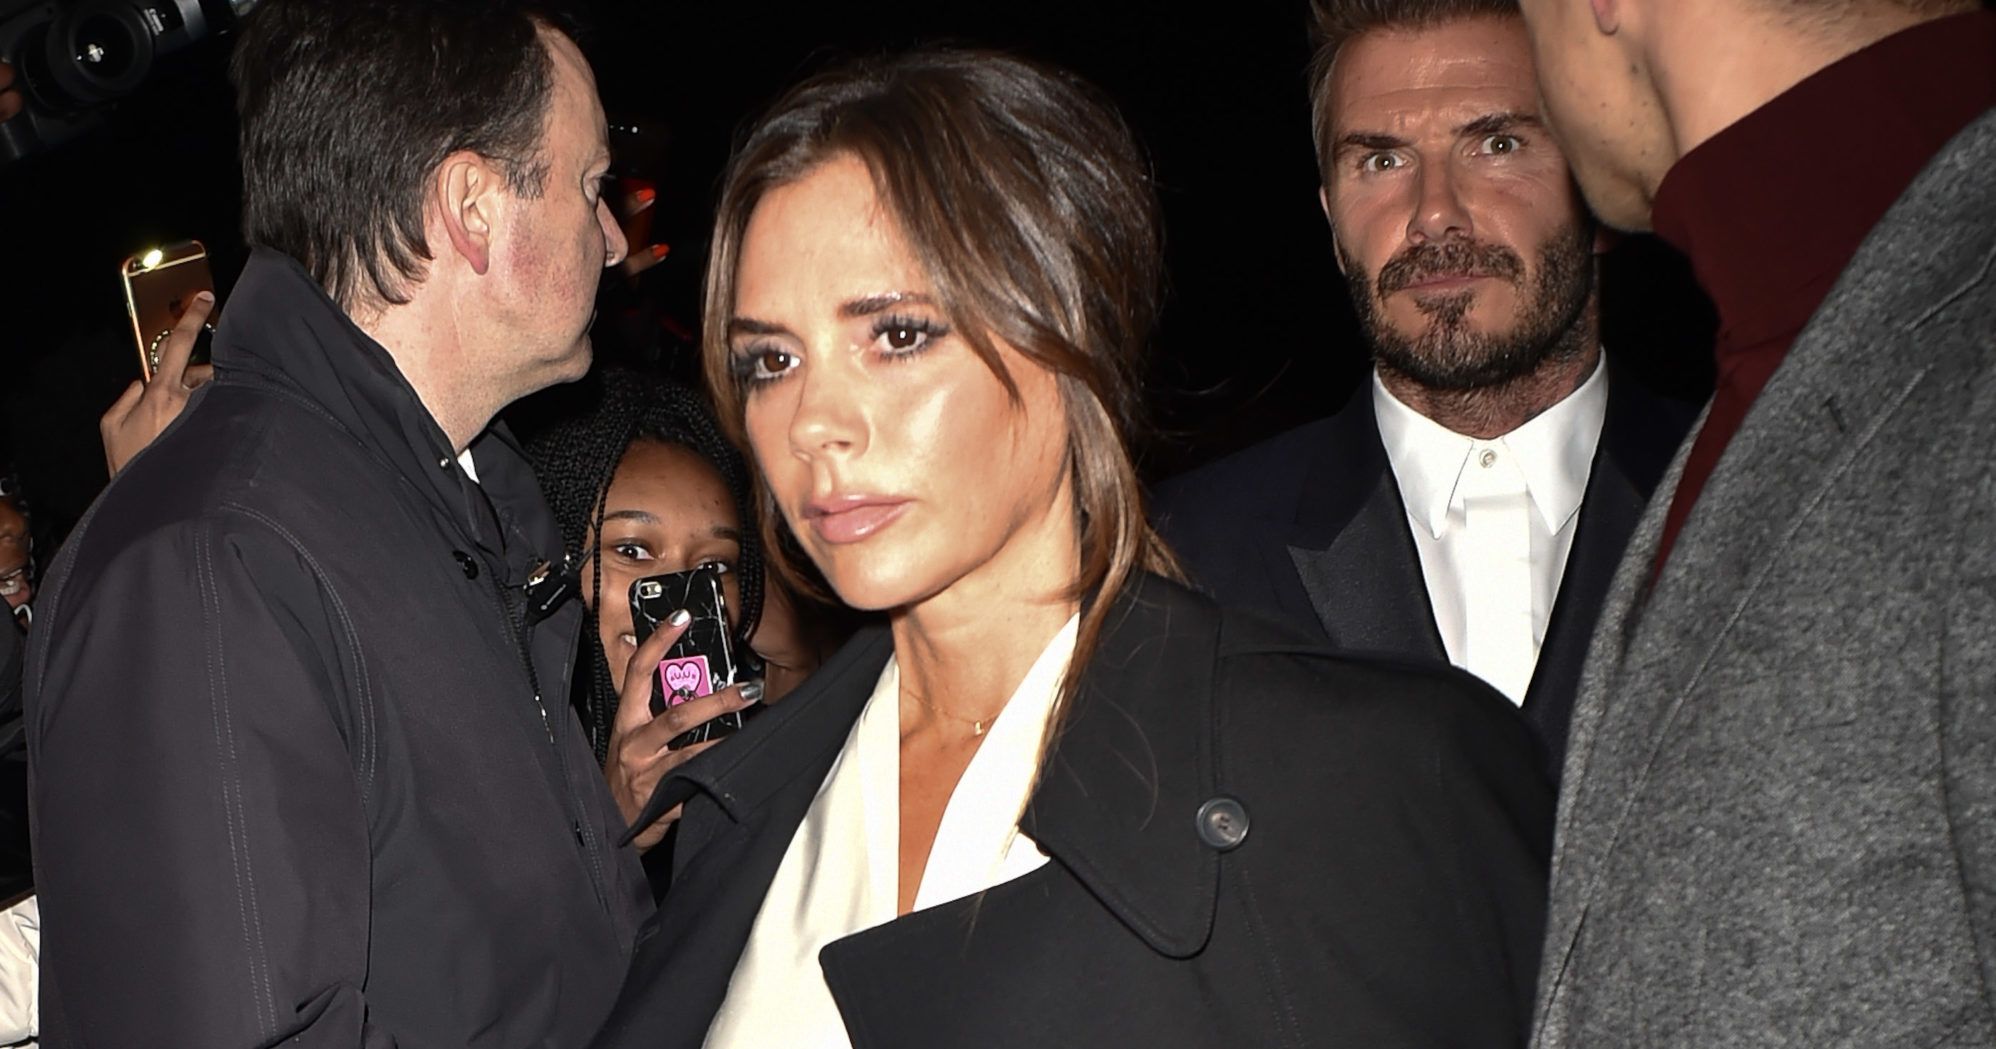 Victoria Beckham reveals hilarious birthday presents from family and friends